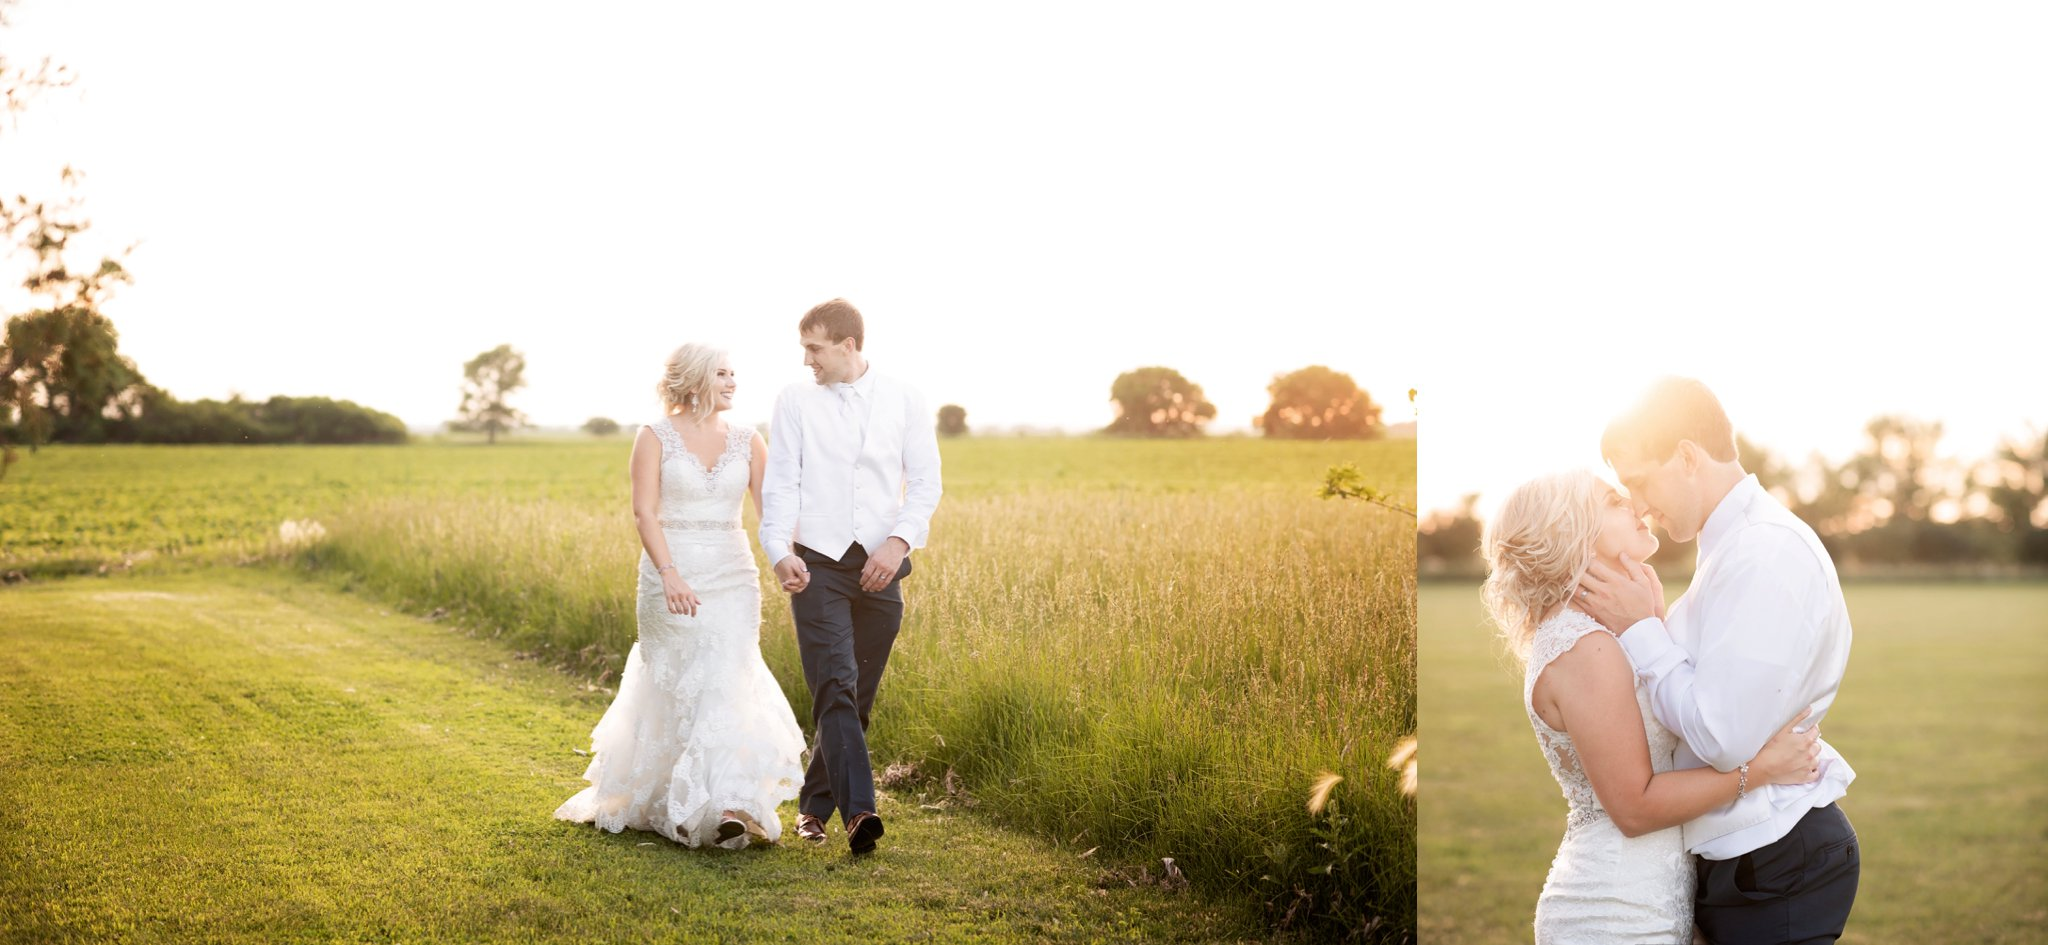 bride and groom walk through field together holding hands